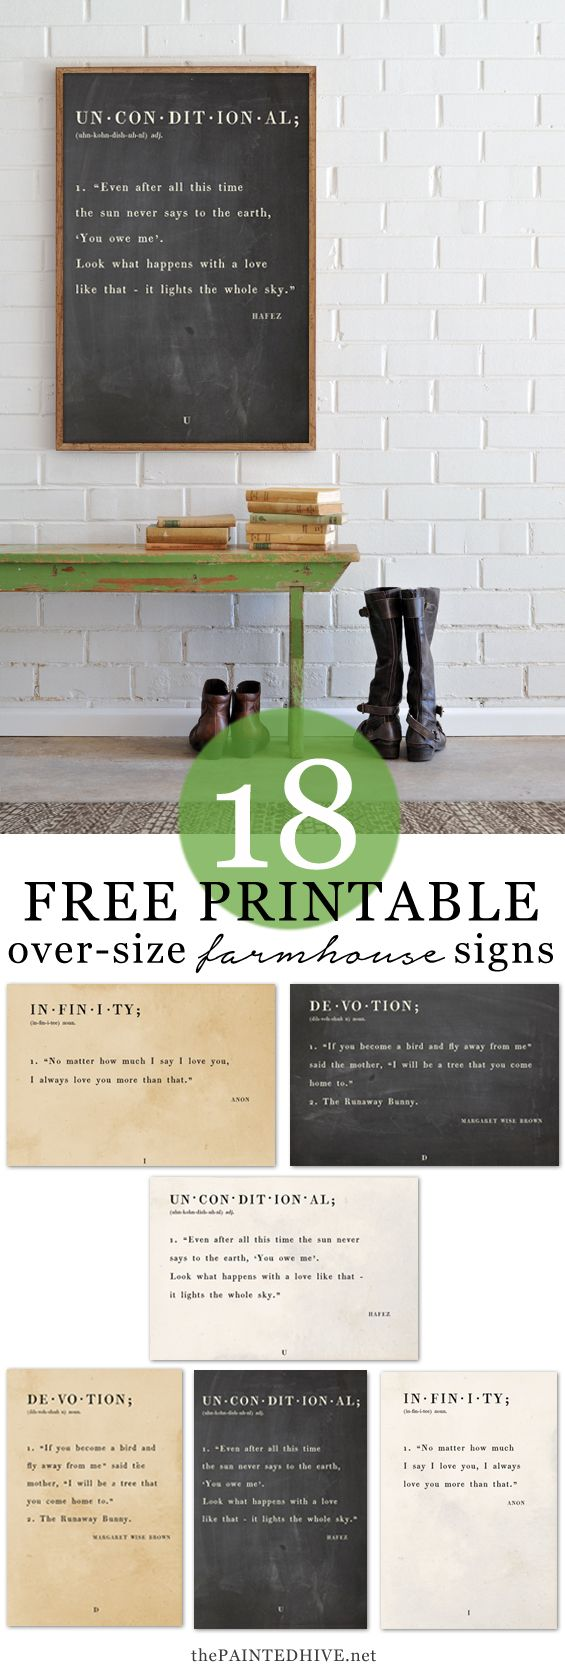 Prints for bathroom walls - 18 Amazing Free Printable Farmhouse Quote Signs Using Dictionary Definitions